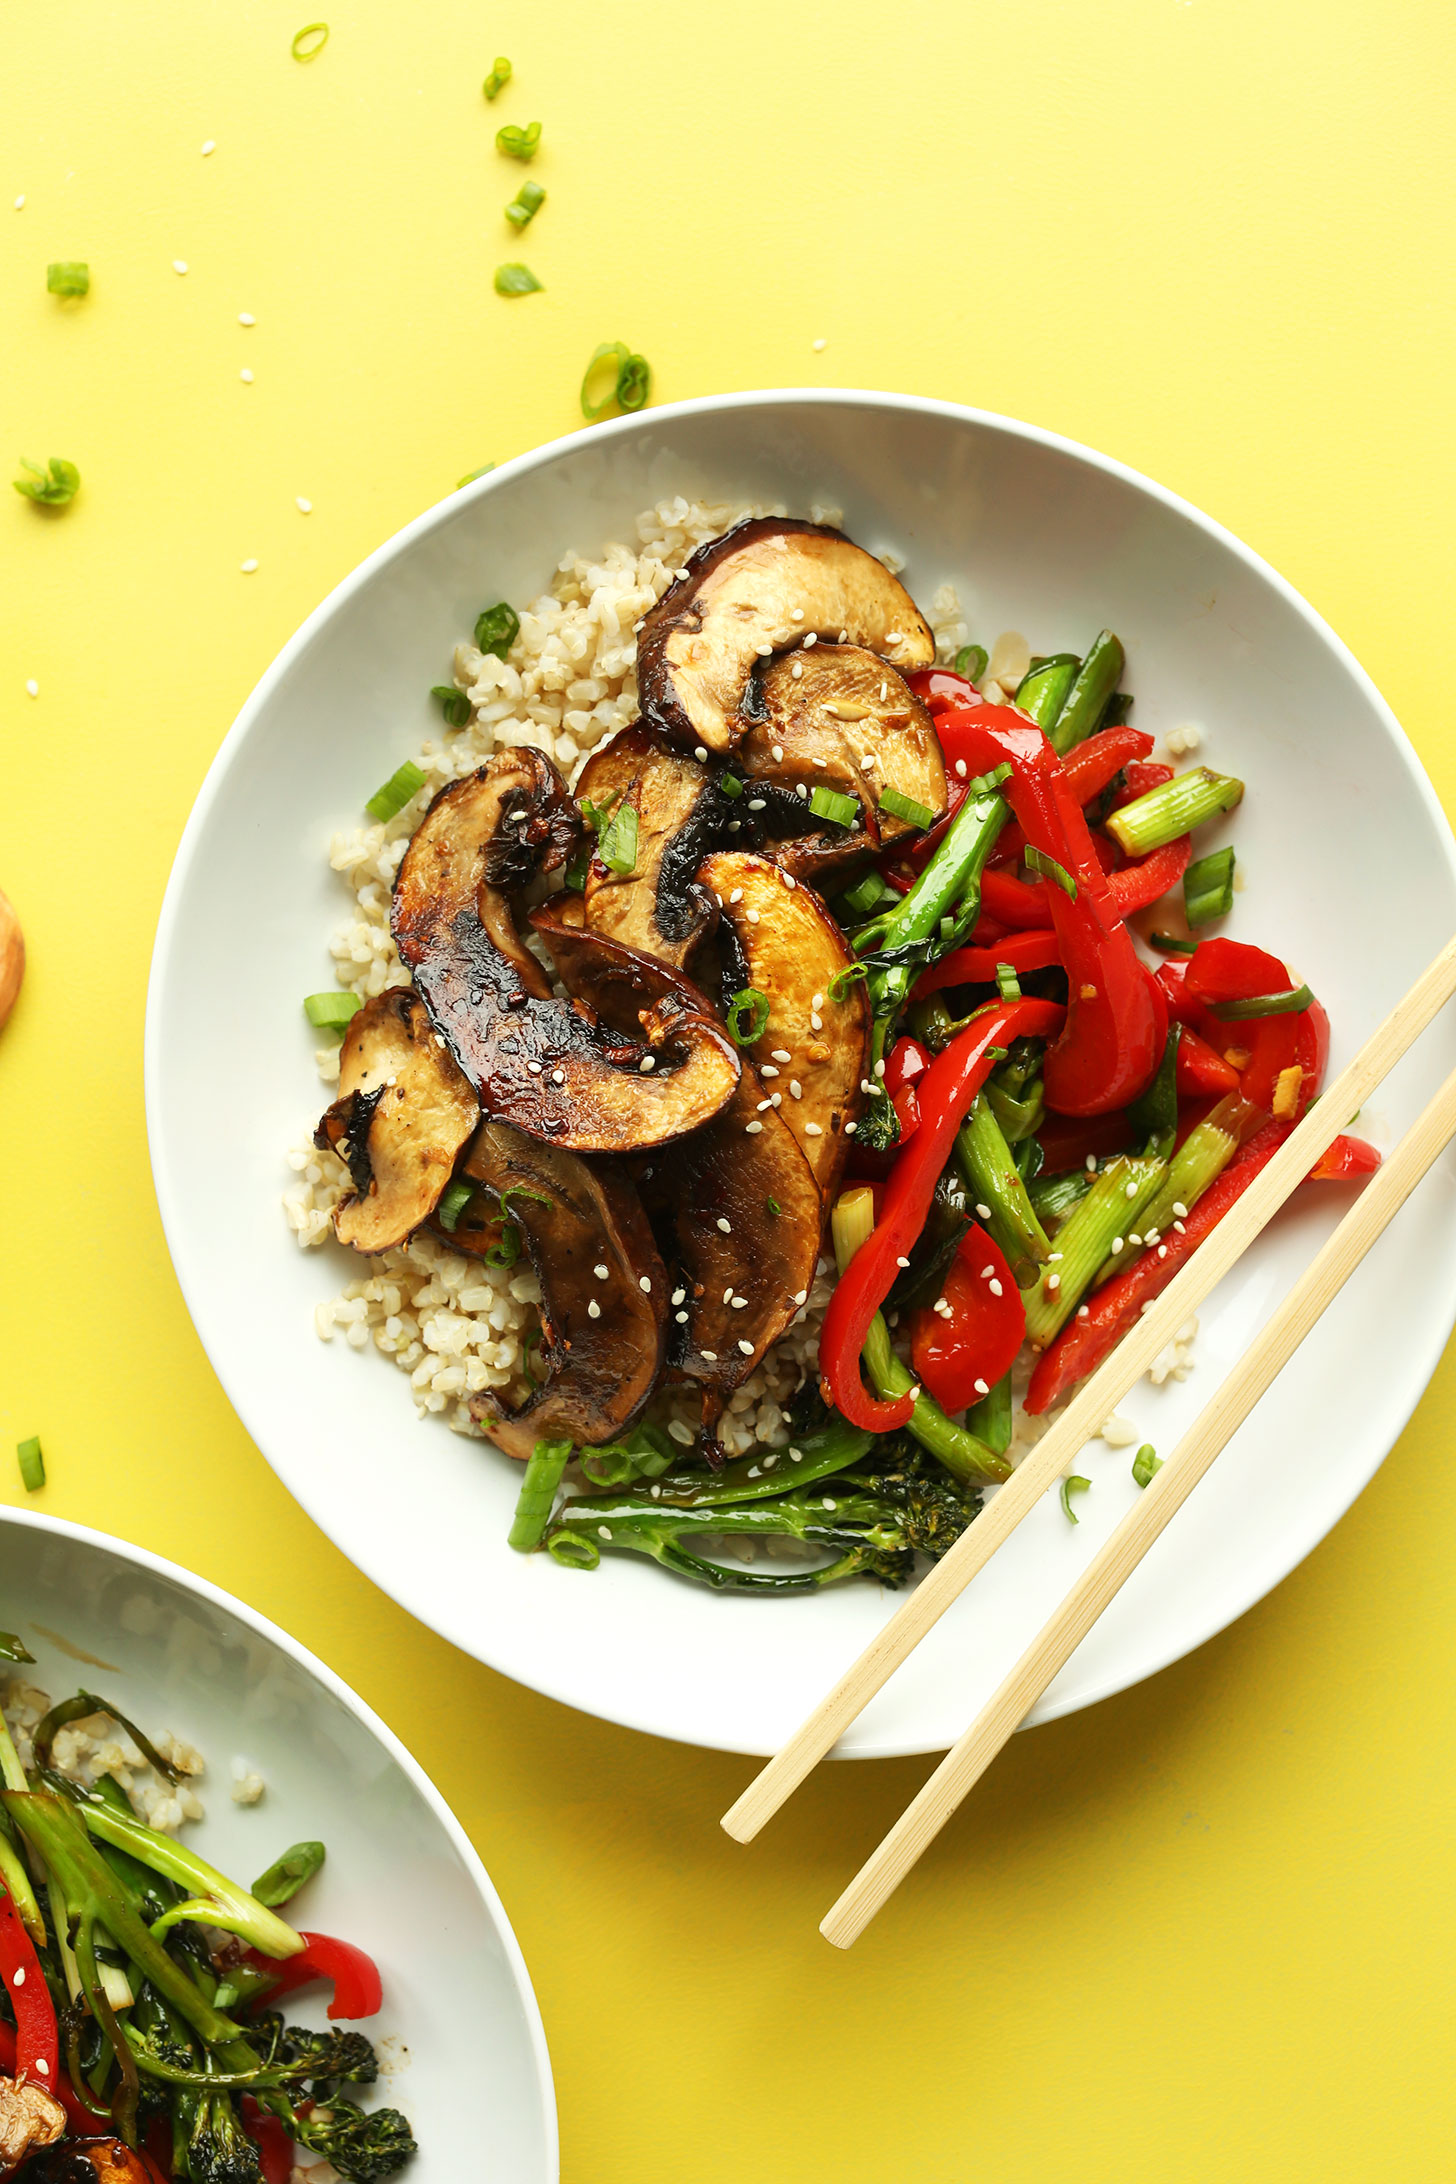 Serving of our flavorful Portobello Mushroom Stir Fry with vegetables for a gluten-free vegan meal